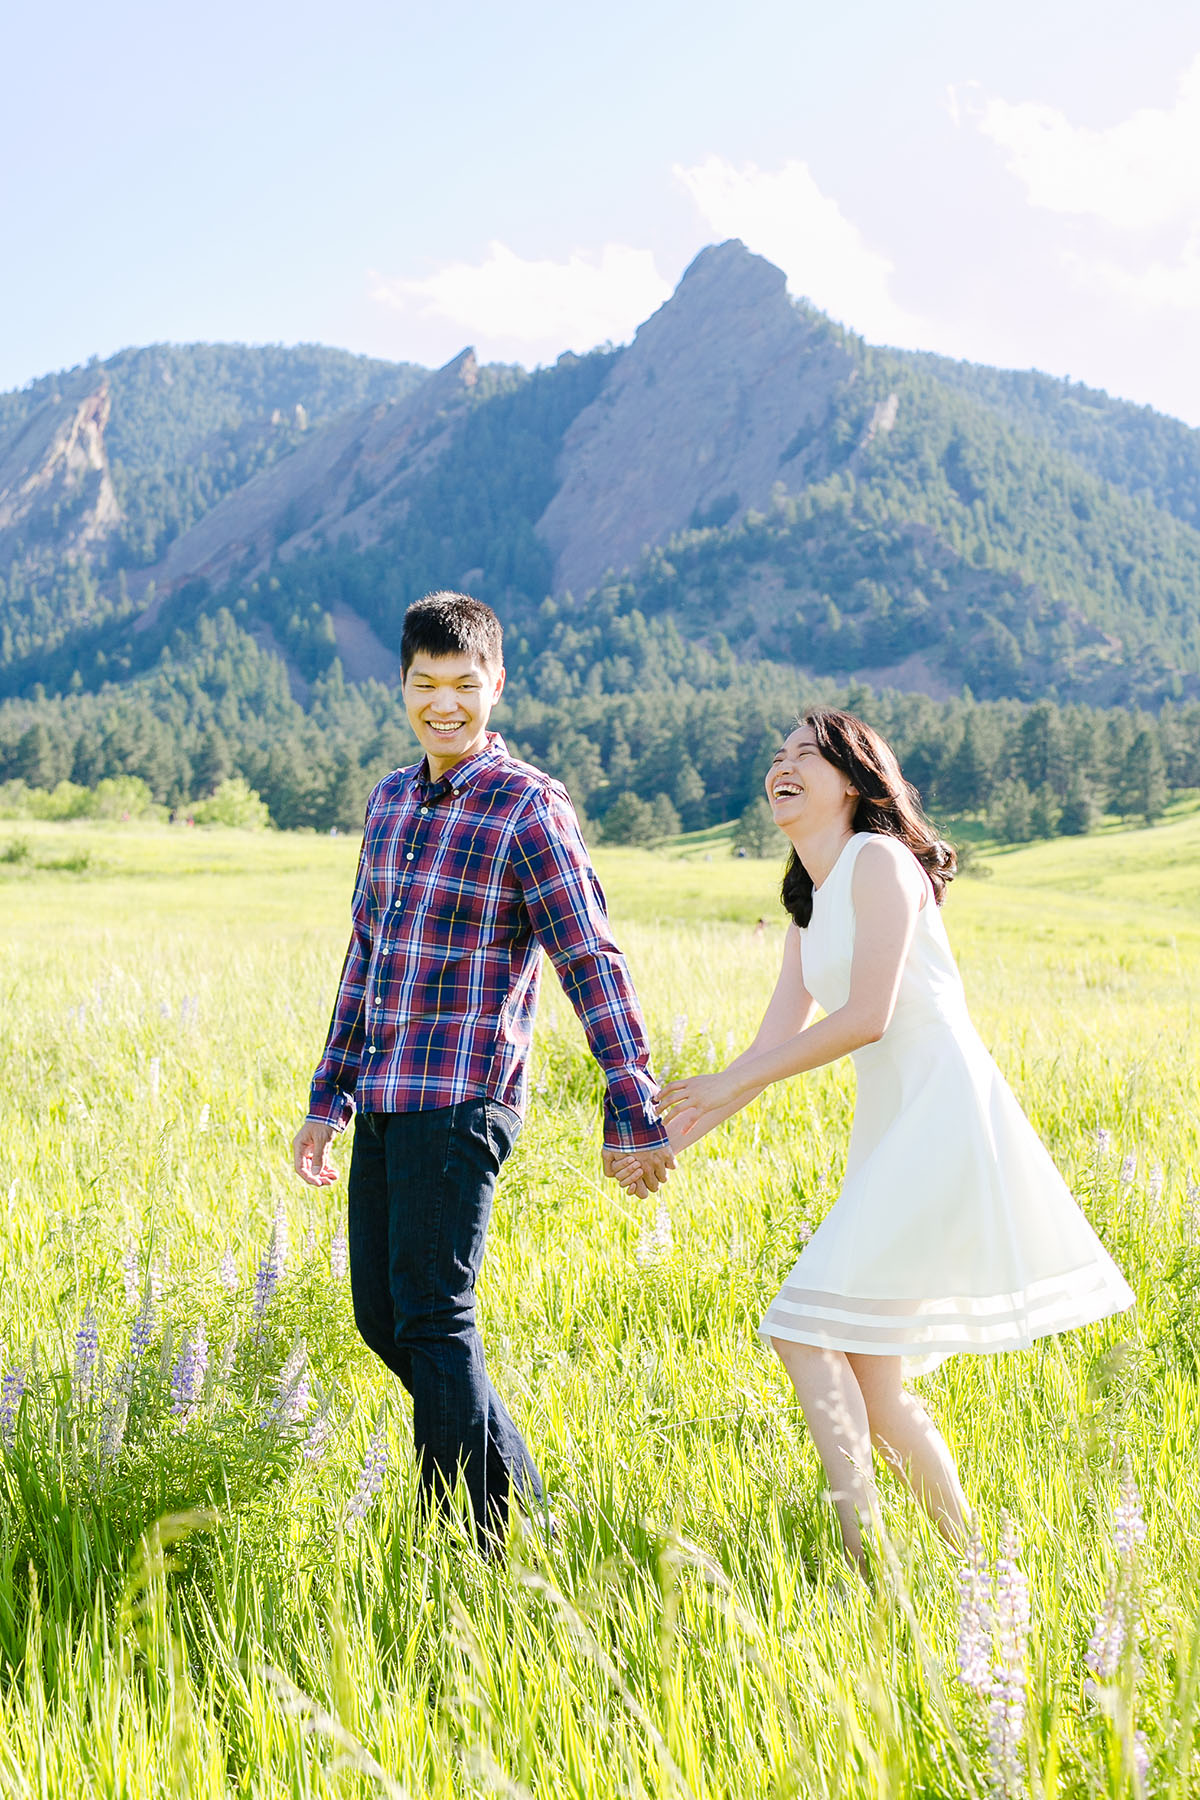 Beth Photography, Beth Sanders, Boulder engagement photography, Boulder engagement photographer, Denver engagement photographer, colorado, Lafayette, Louisville photographer